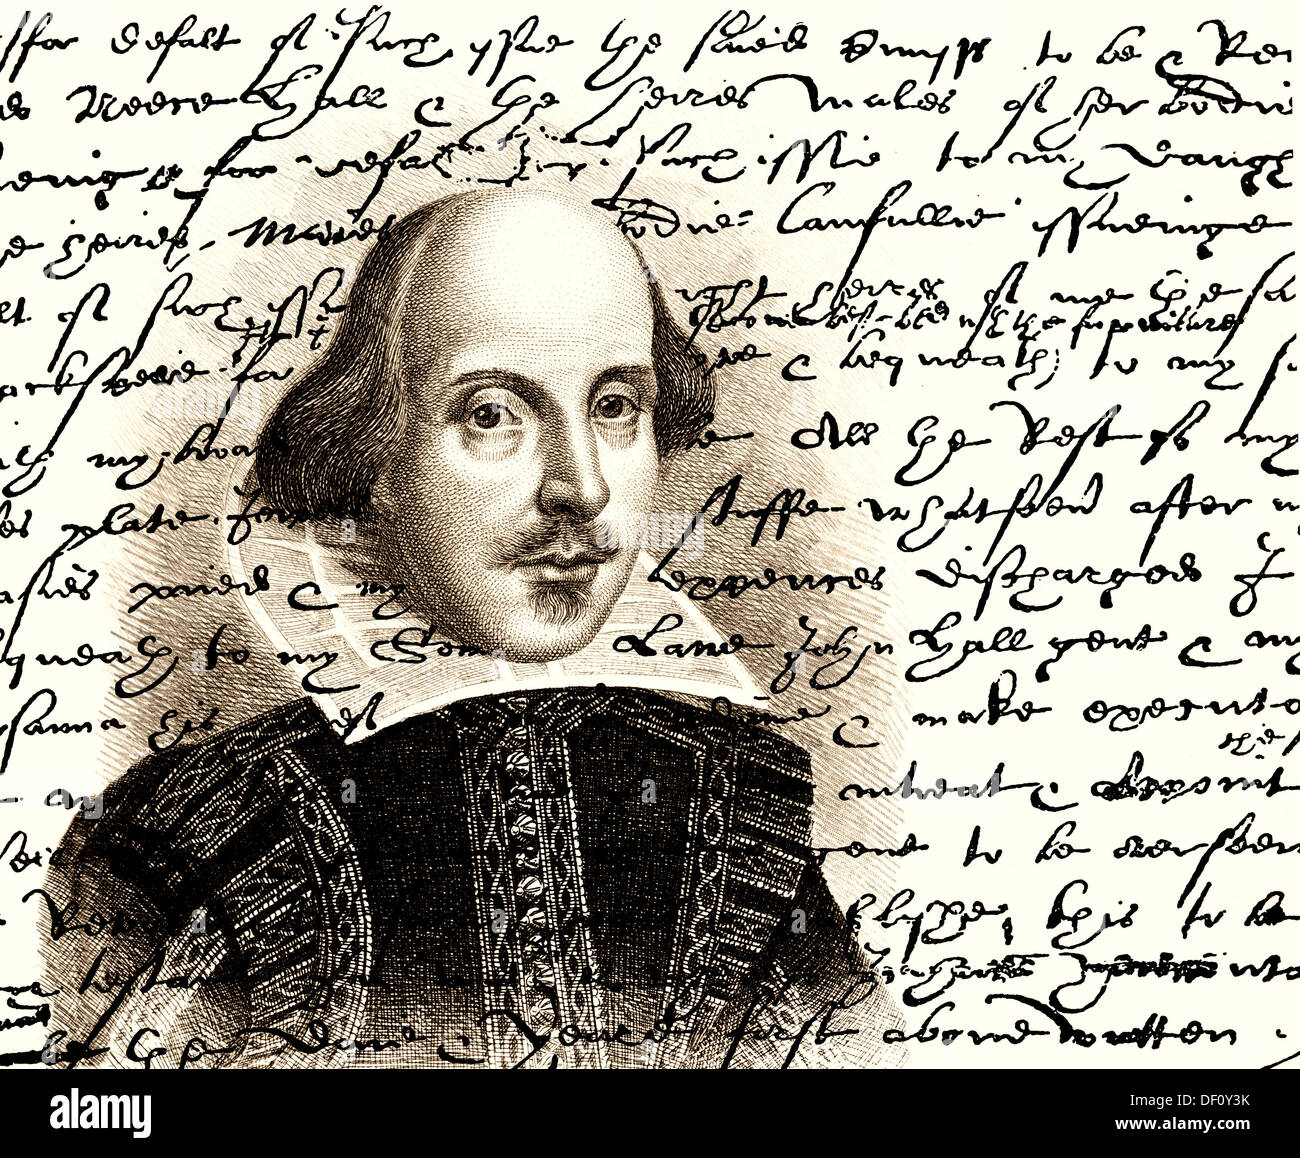 history of william shakespeare as a poet and playwright The english playwright, poet, and actor william shakespeare was a popular dramatist he was born six years after queen elizabeth i shakespeare's first plays in the popular history genre (particular style) are equally ambitious and impressive henry vi.